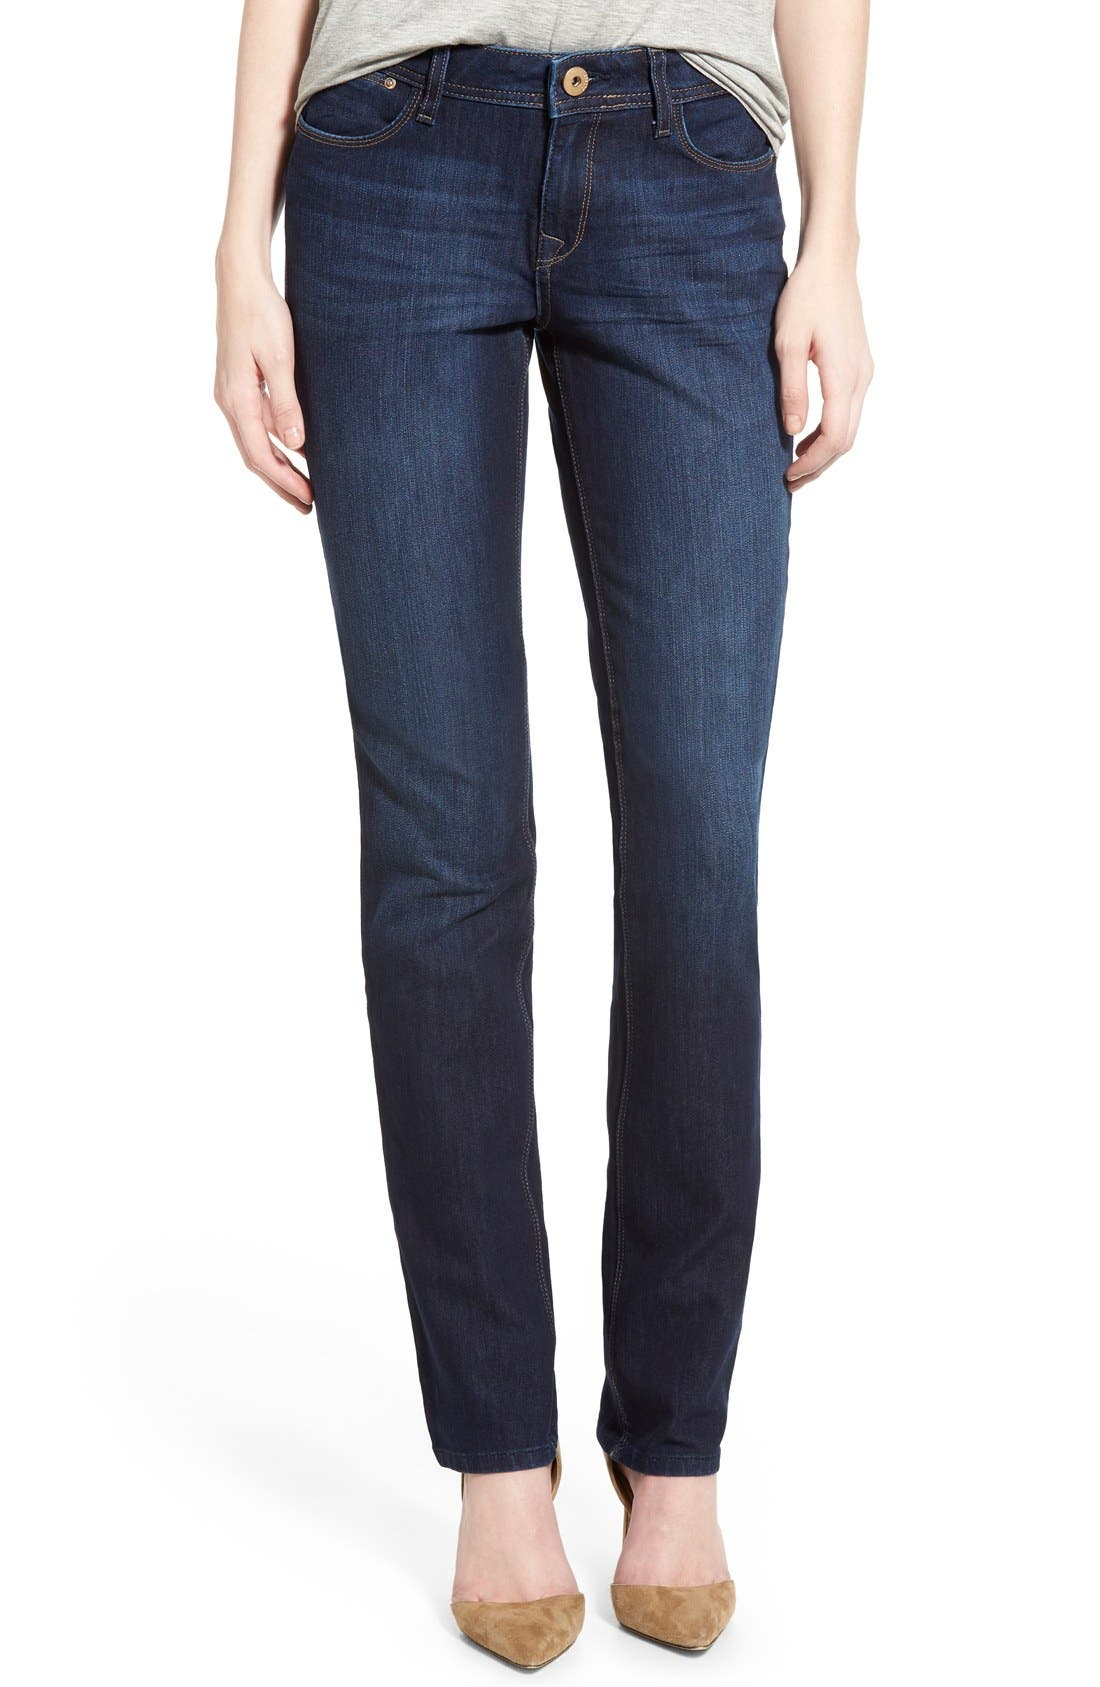 'Coco' Curvy Straight Jeans,                             Main thumbnail 1, color,                             Solo